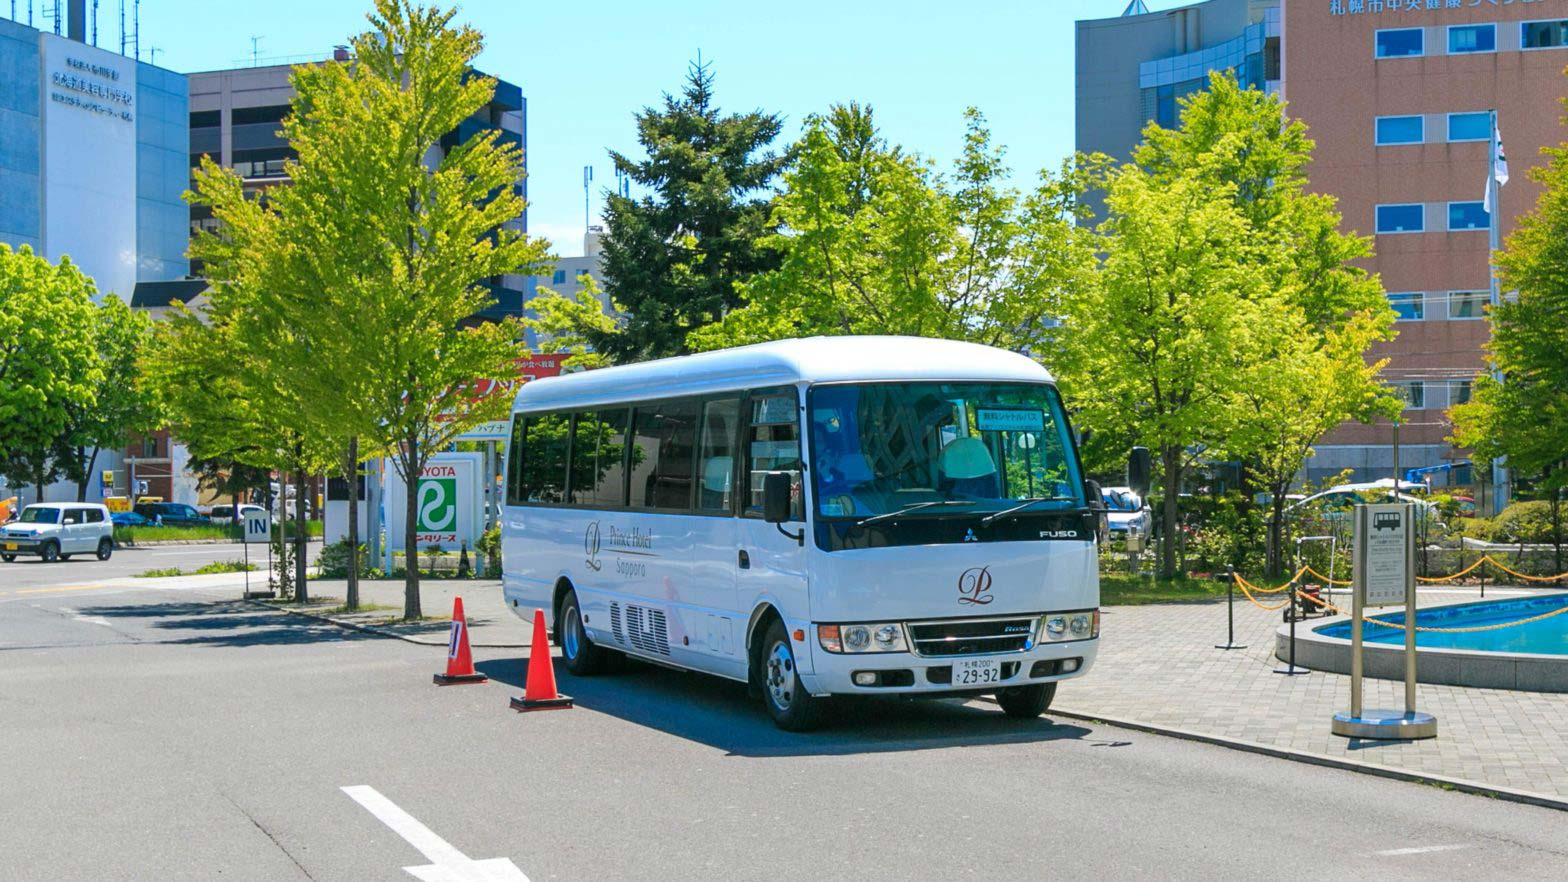 Notice of delay in free shuttle bus operation due to the Hokkaido Marathon August 25, 2019 (Sun) | Sapporo Prince Hotel